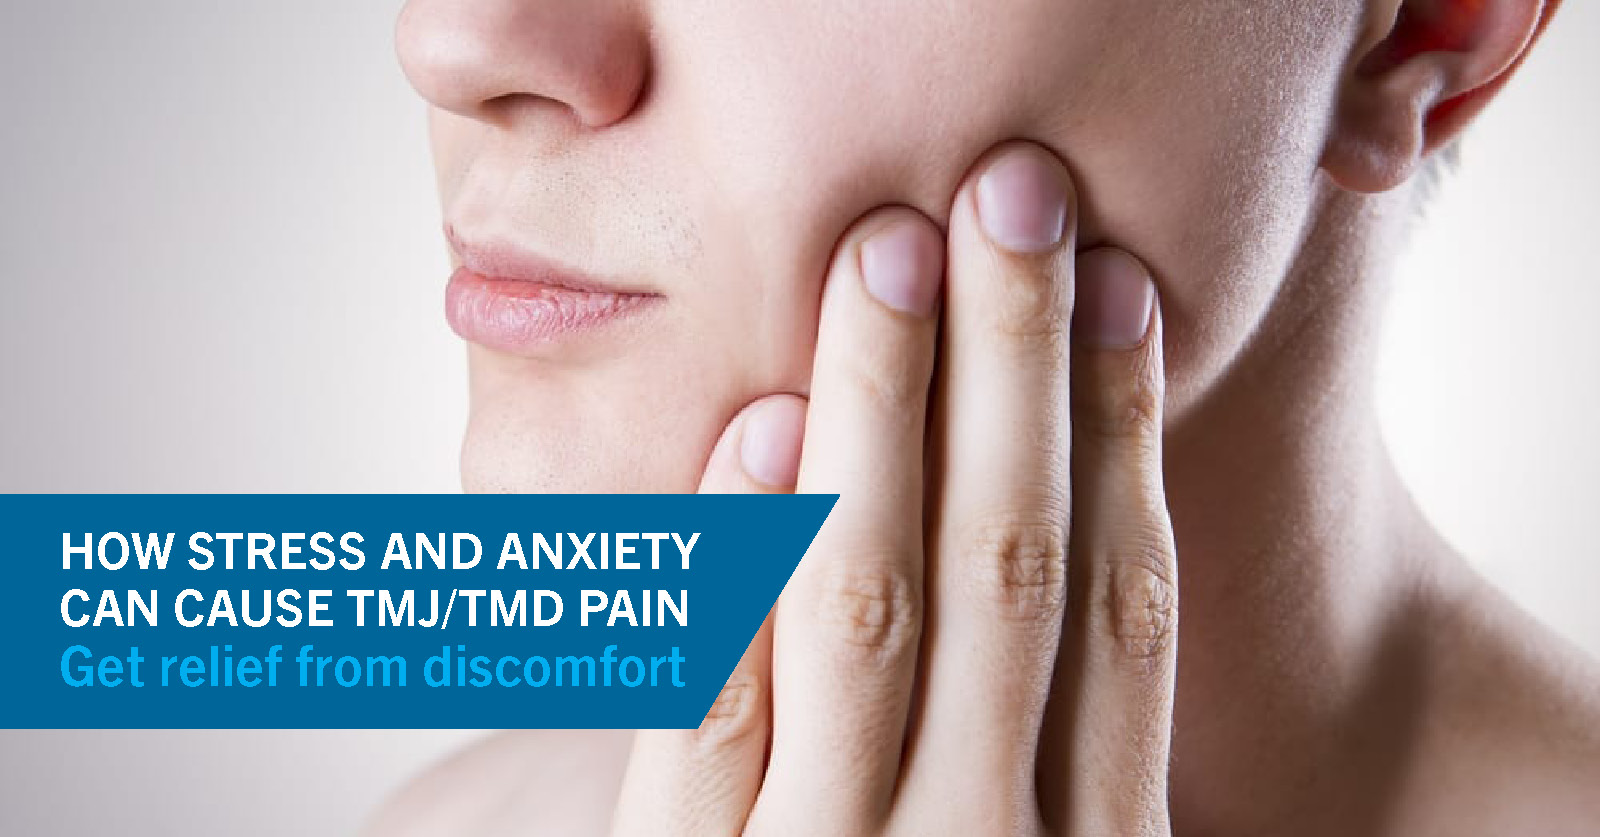 How Stress and Anxiety Can Cause TMJ/TMD Pain